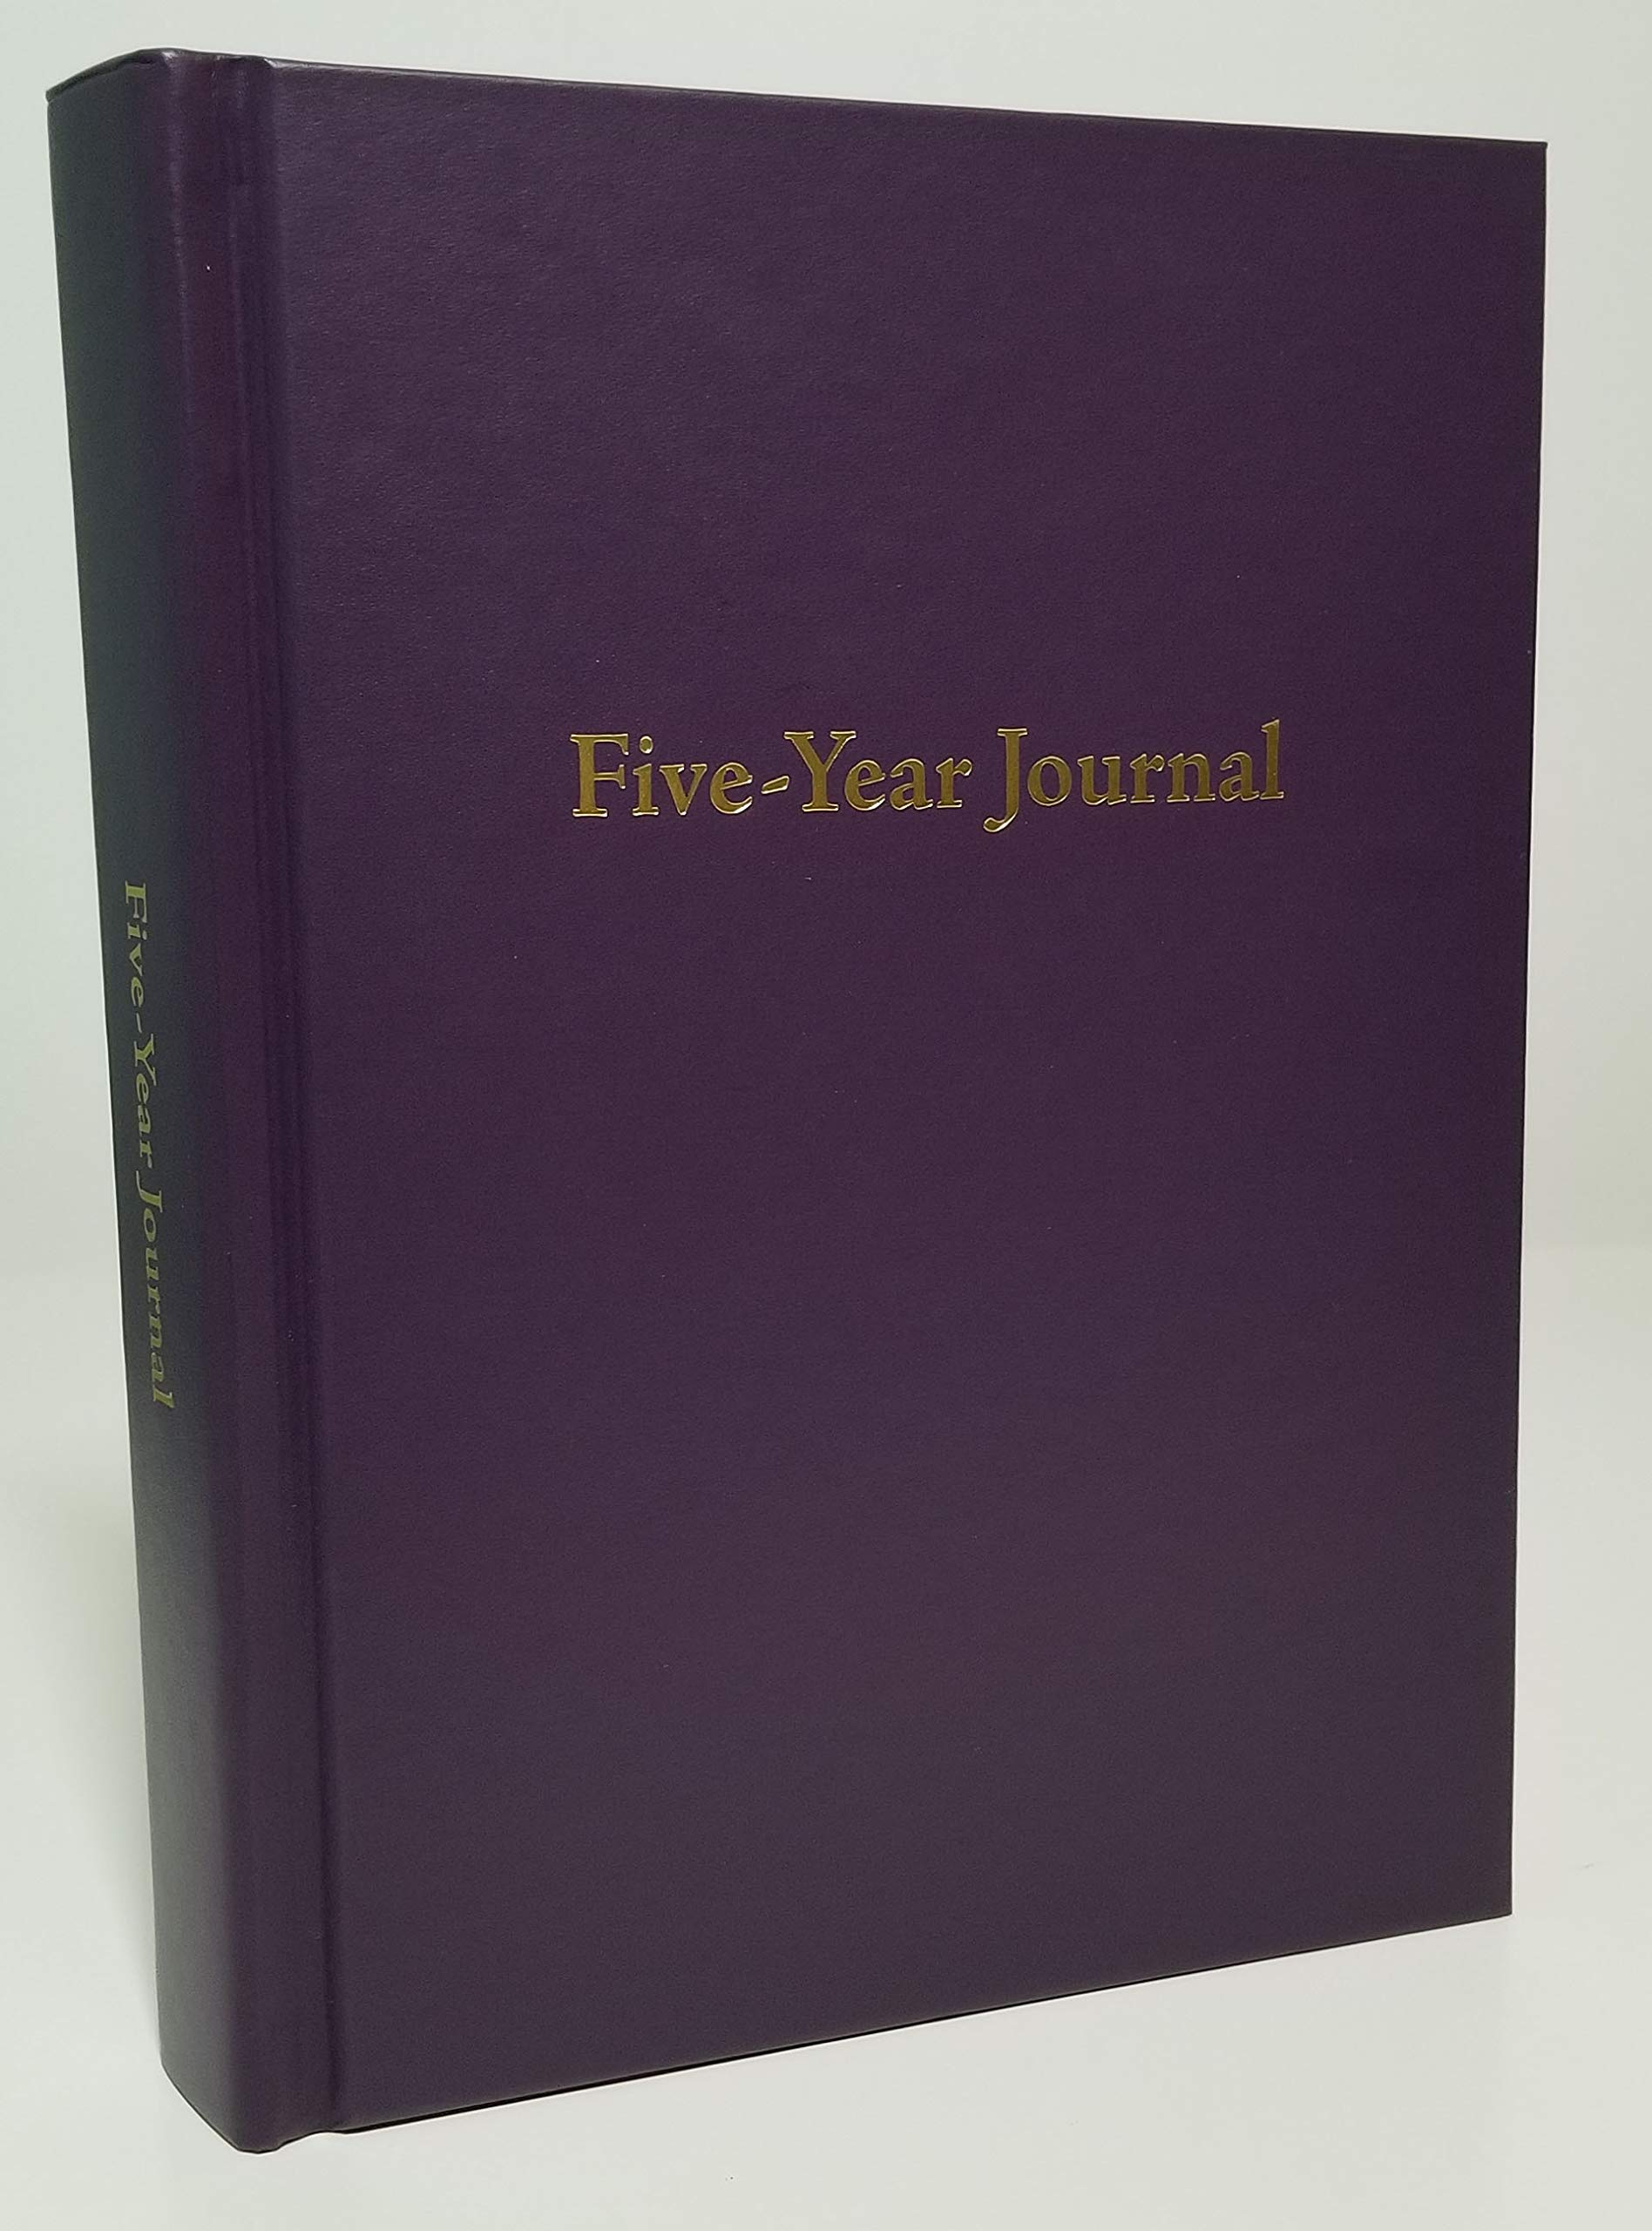 Hard Cover 5 Year Journal | The Easiest to Use Five Year Journal | Quick and Easy Five Year Daily Journal System | 6x8.25 Inch Size (Blackberry Purple) by Writing Your Life